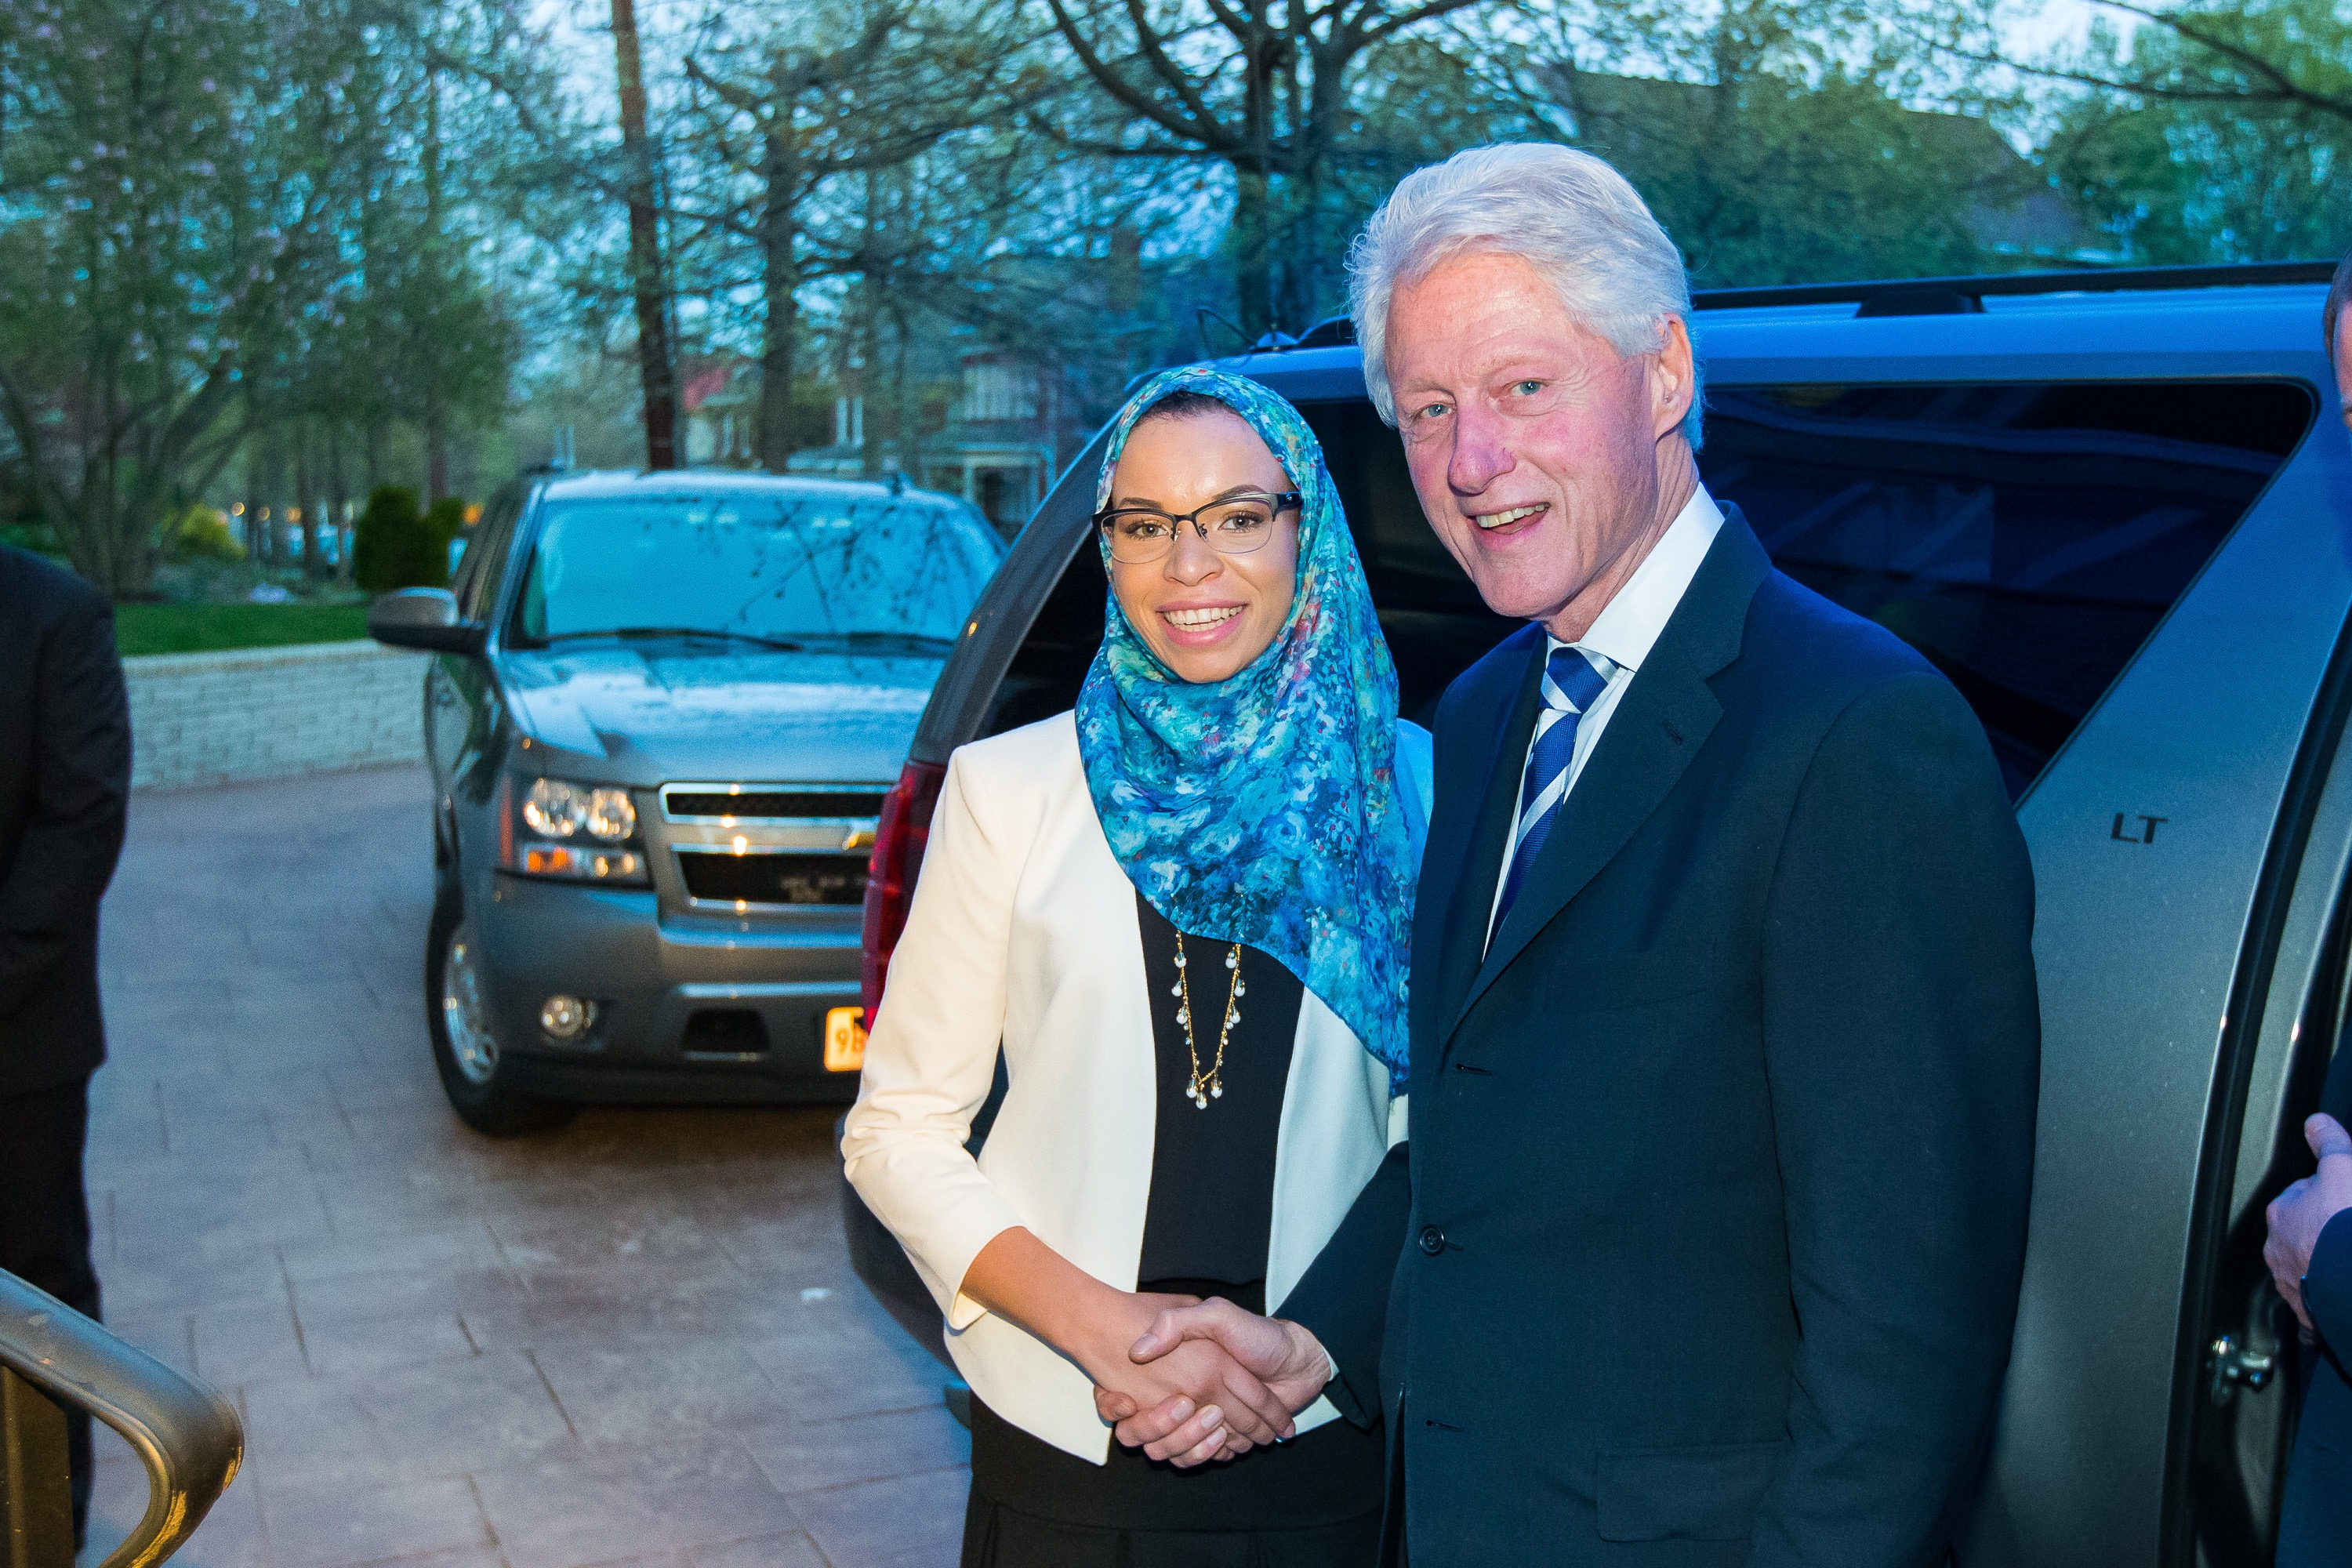 yes bill clinton i am a muslim who loves america and freedom